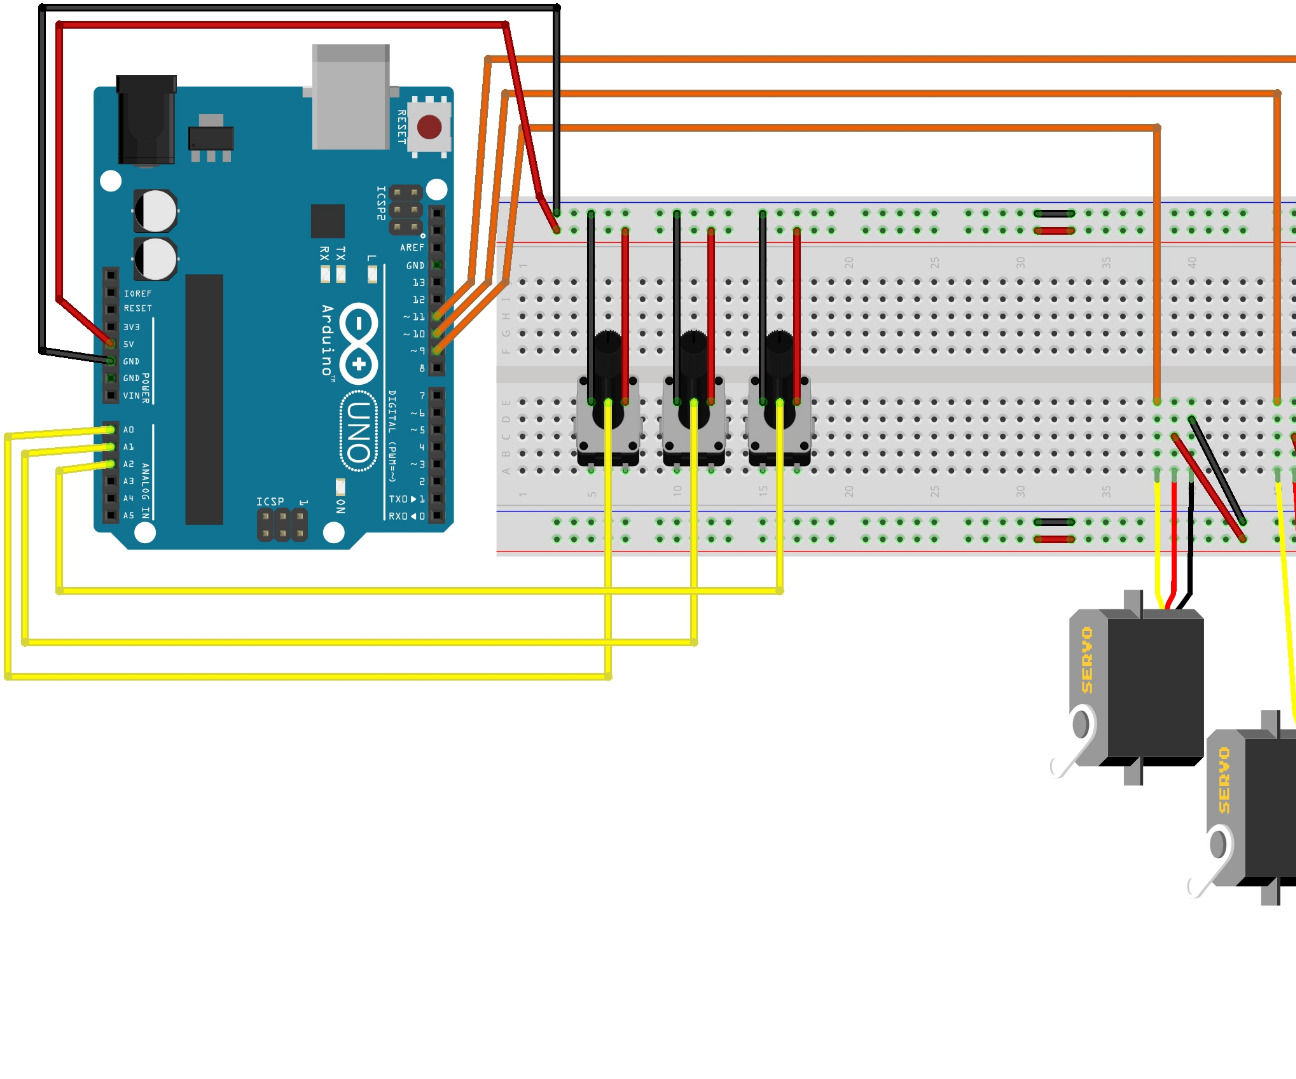 hight resolution of controlling 3 servo motors with 3 potentiometers and an arduino